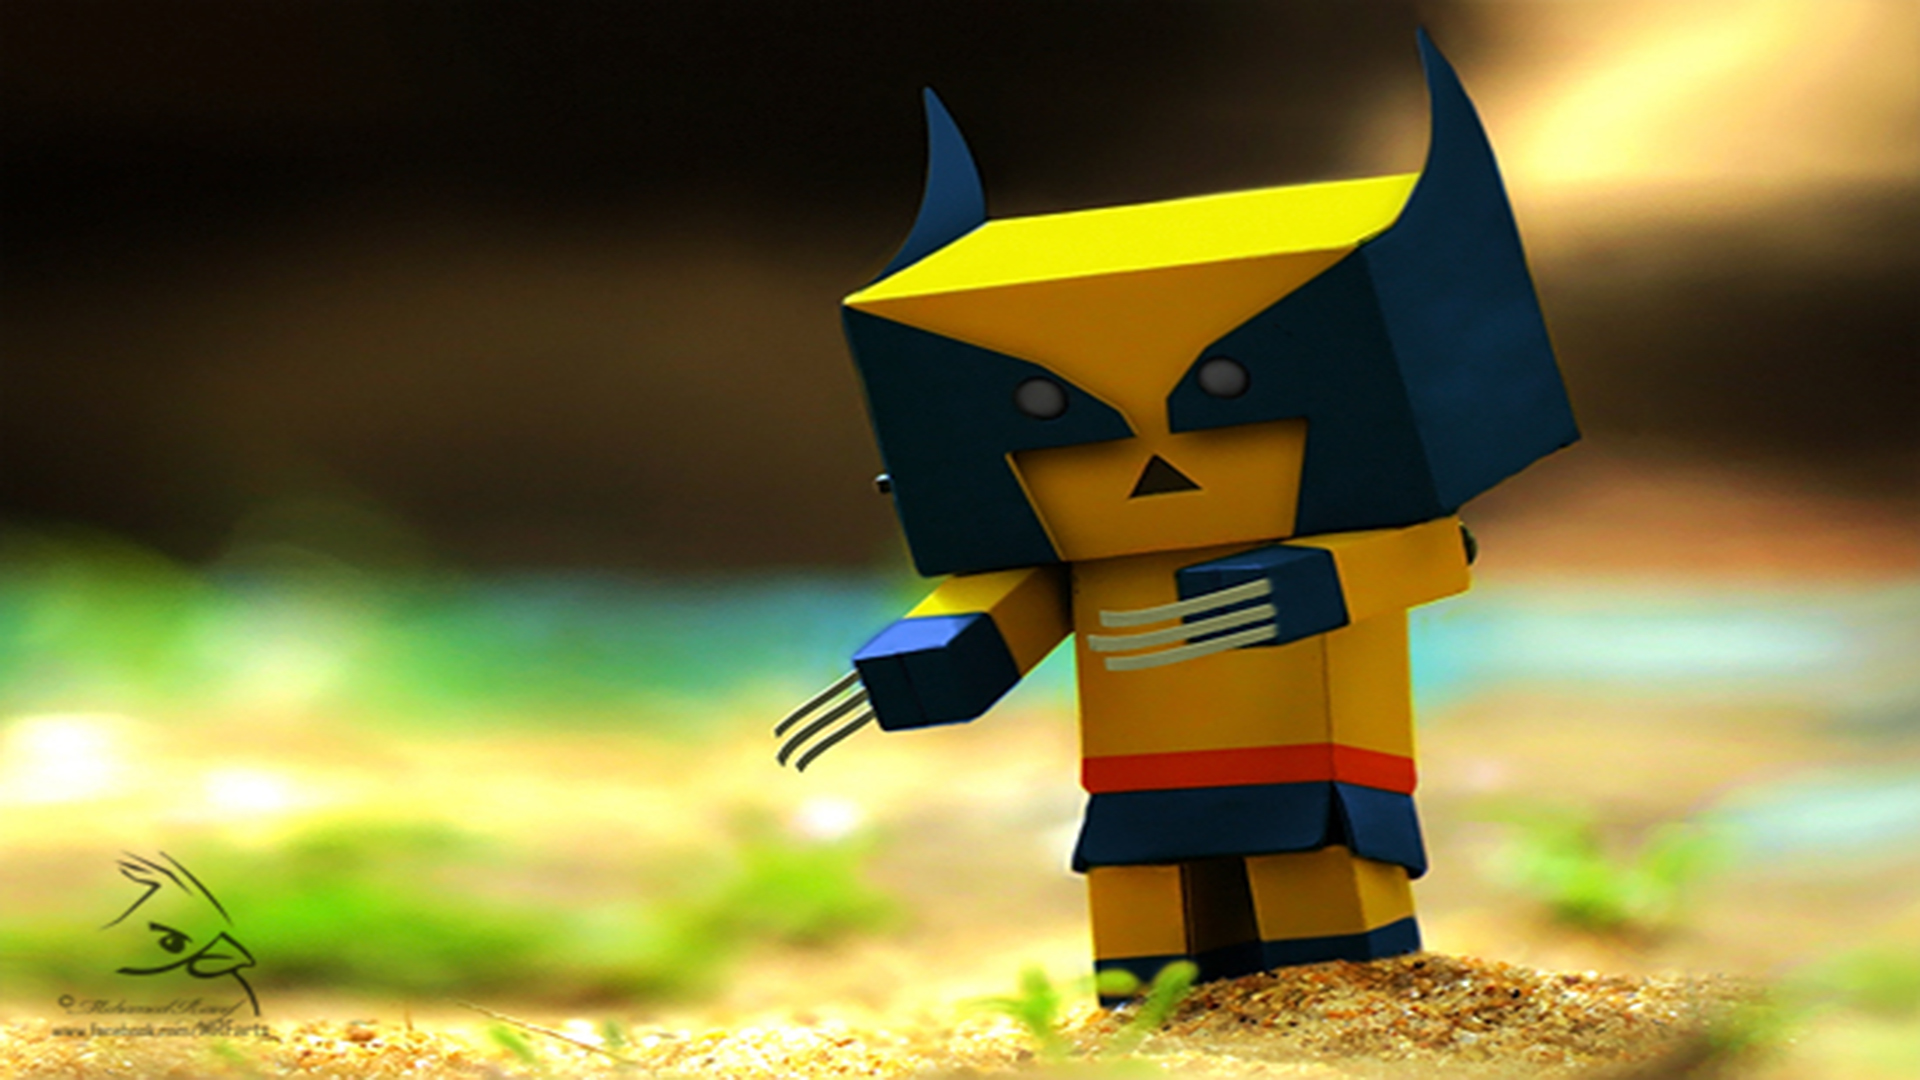 Hd Superhero Wallpapers For Pc Latest 35 Wolverine Hd Wallpapers For Pc